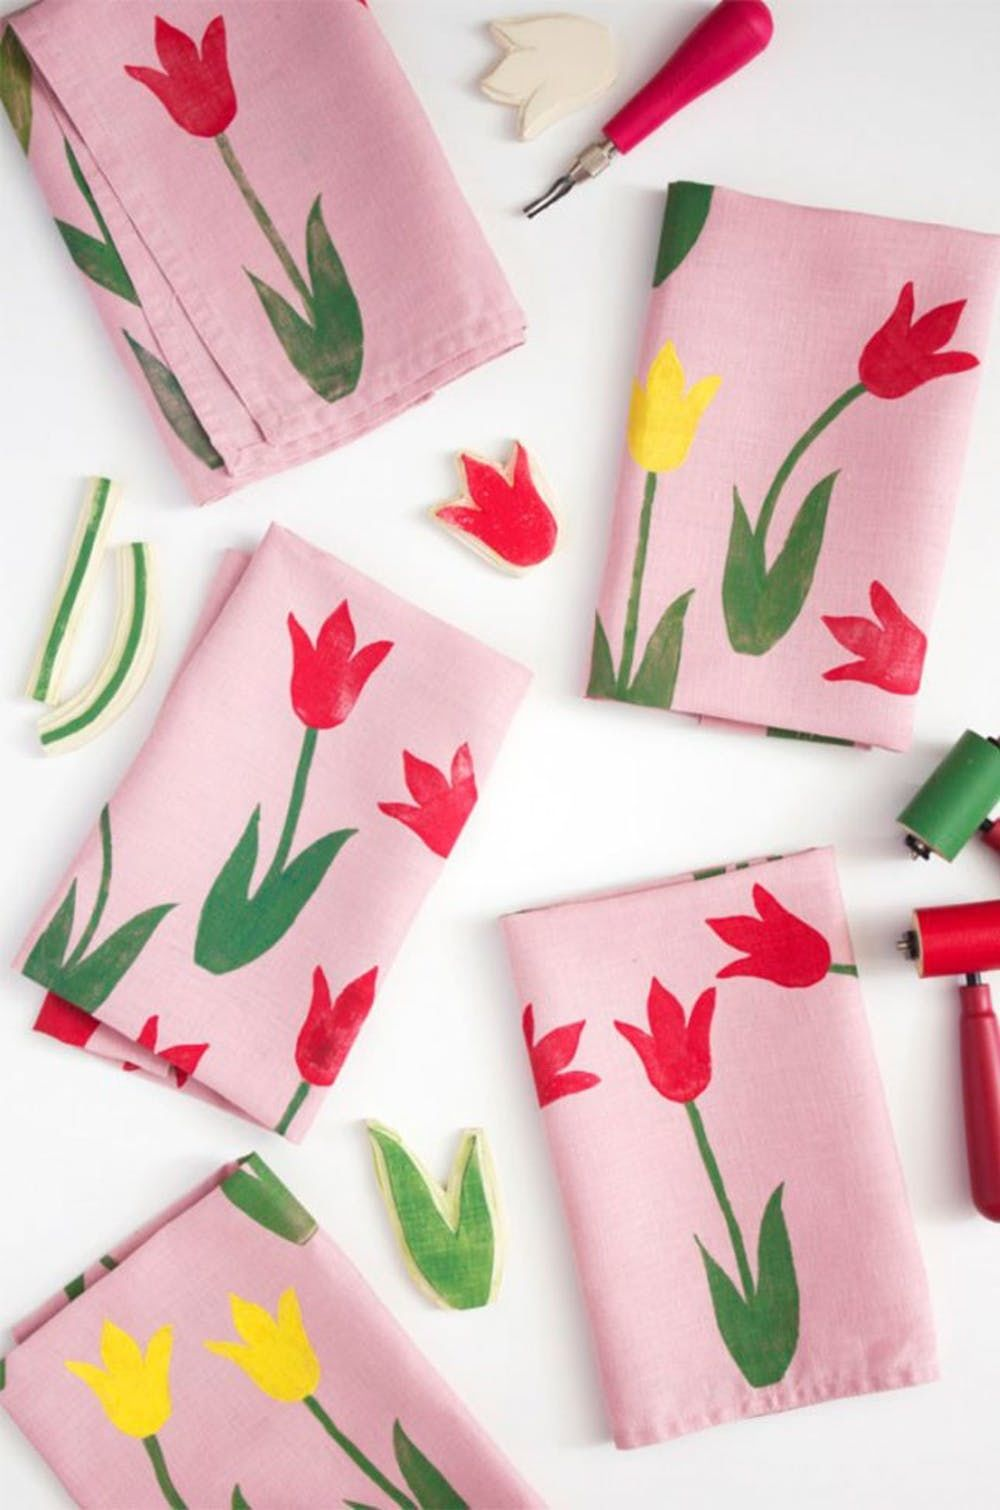 Block Print Tulip Napkin Pictures Photos And Images For Facebook